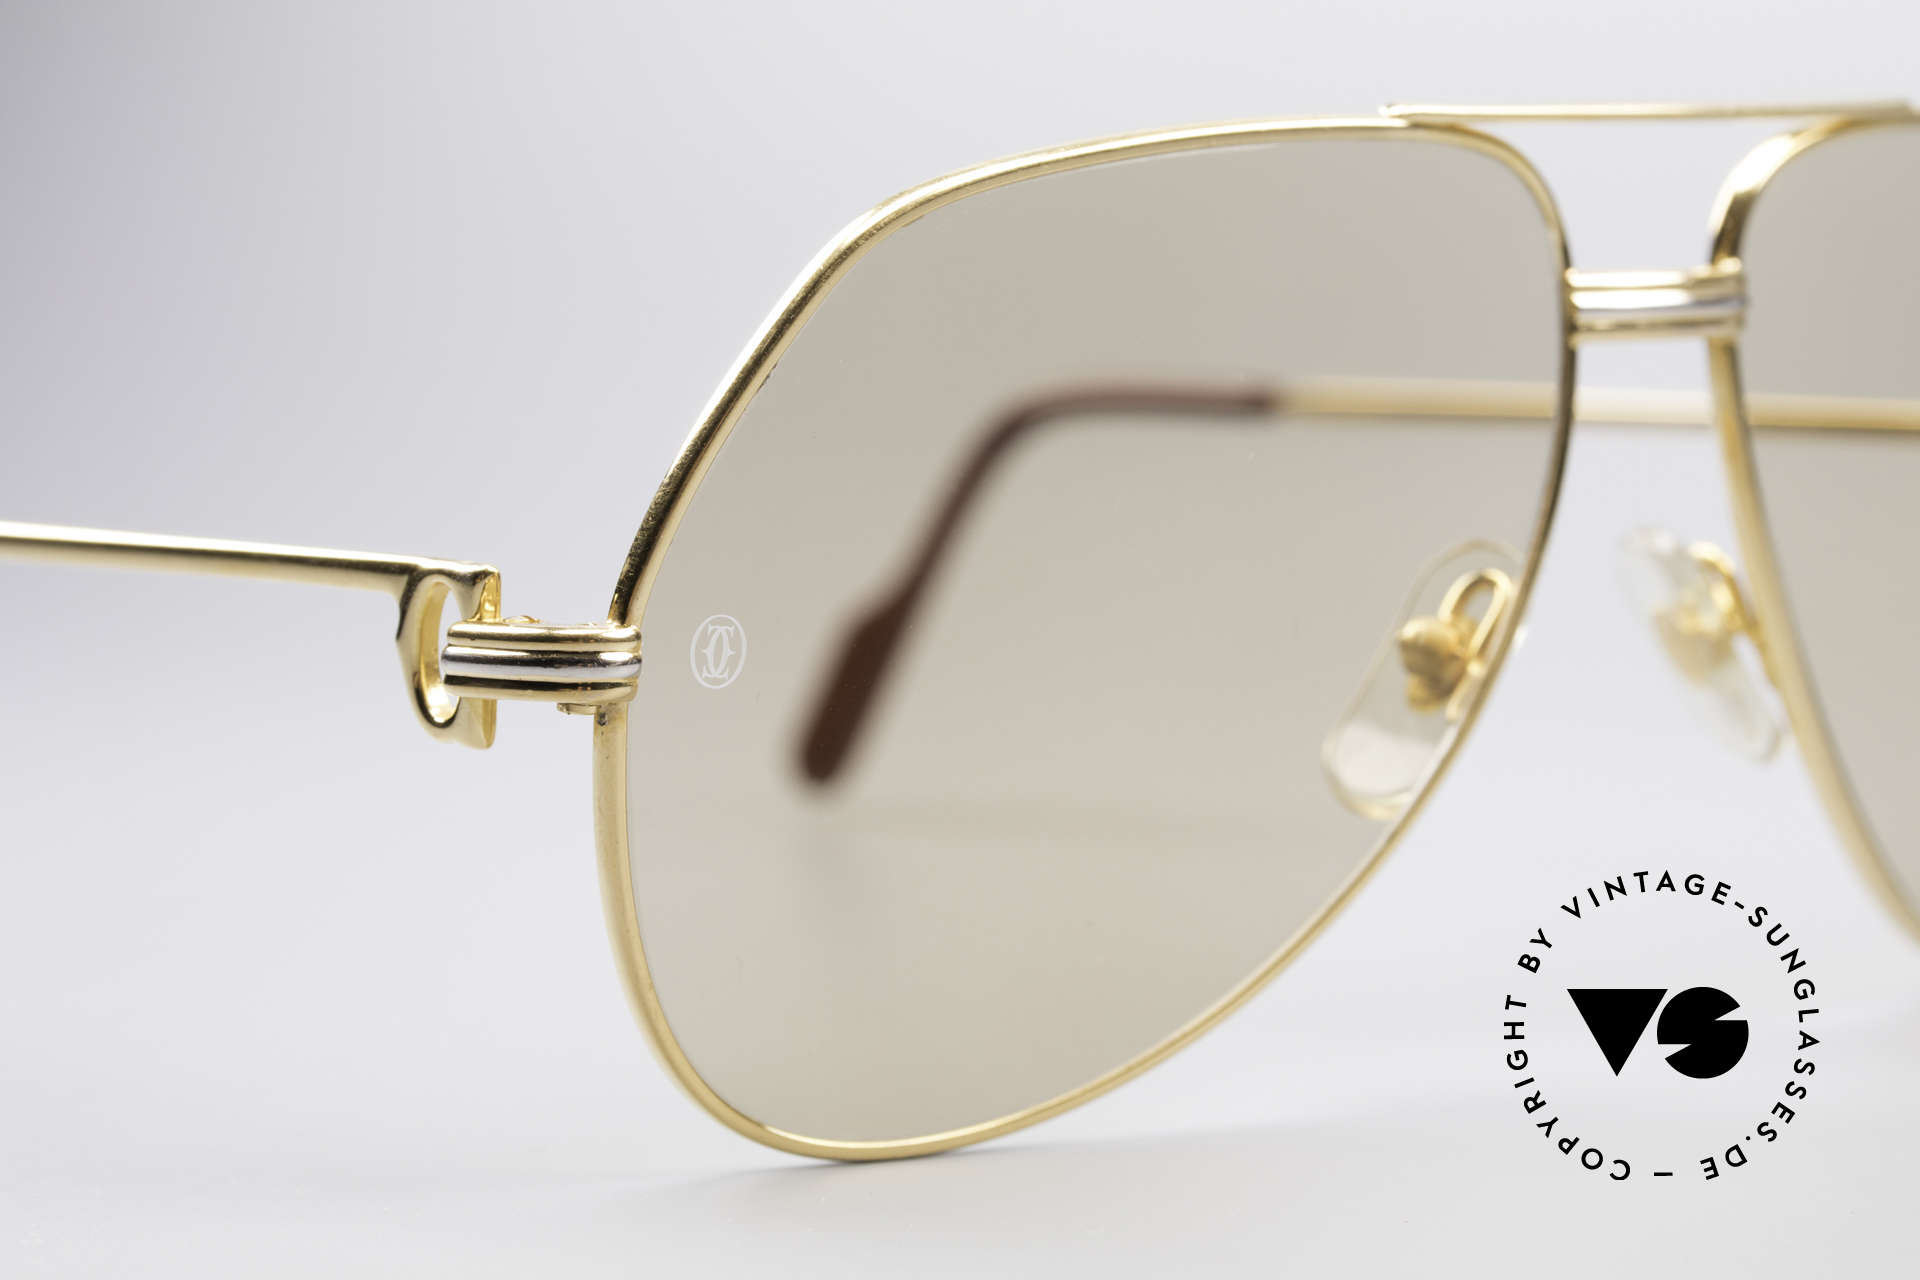 Cartier Vendome LC - L Mineral Lens With Cartier Logo, orig. mineral lenses (100% UV prot.) with Cartier logos, Made for Men